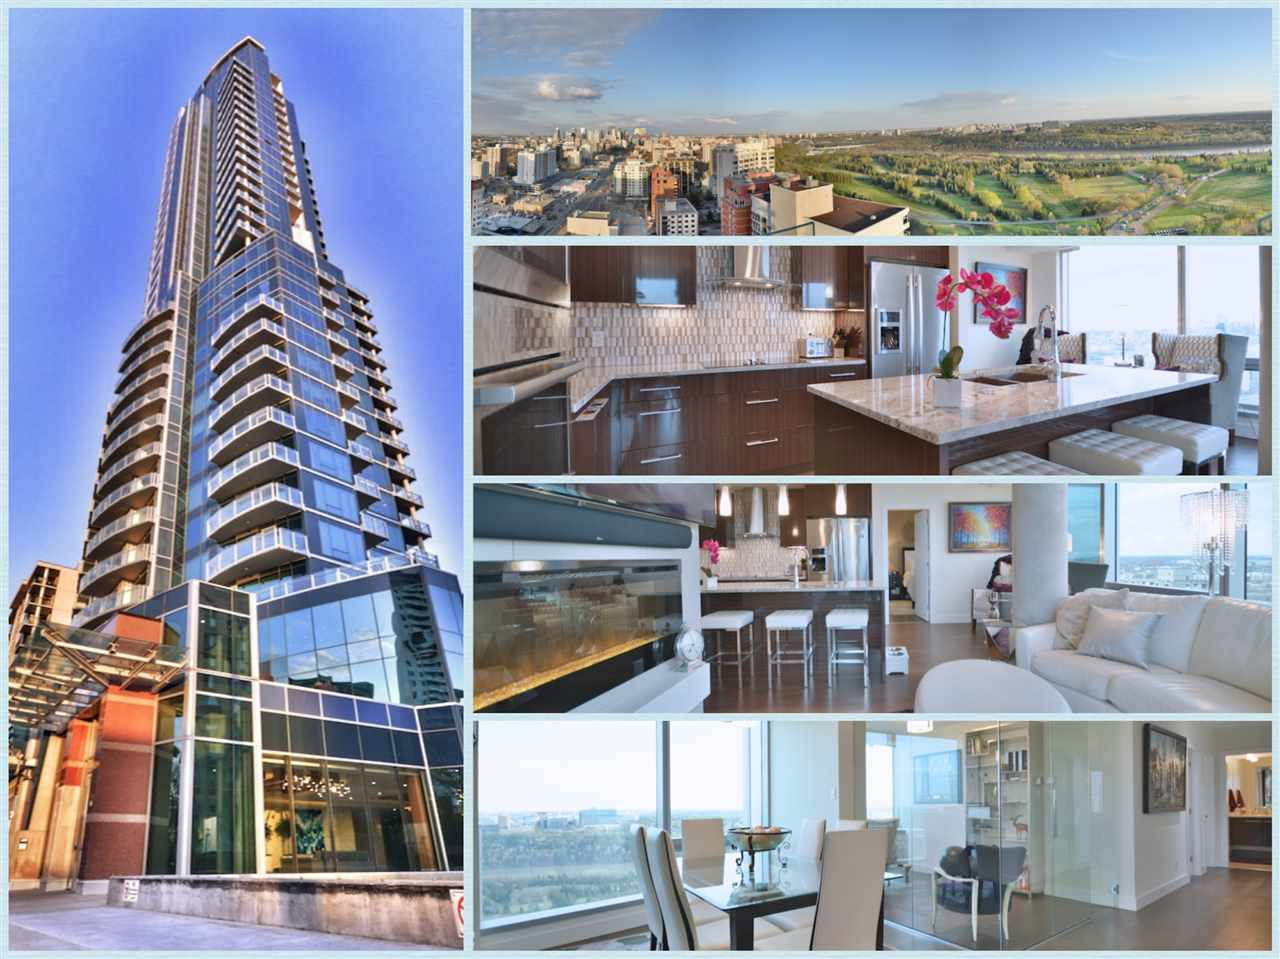 Main Photo: 2102 11969 JASPER Avenue in Edmonton: Zone 12 Condo for sale : MLS® # E4088660